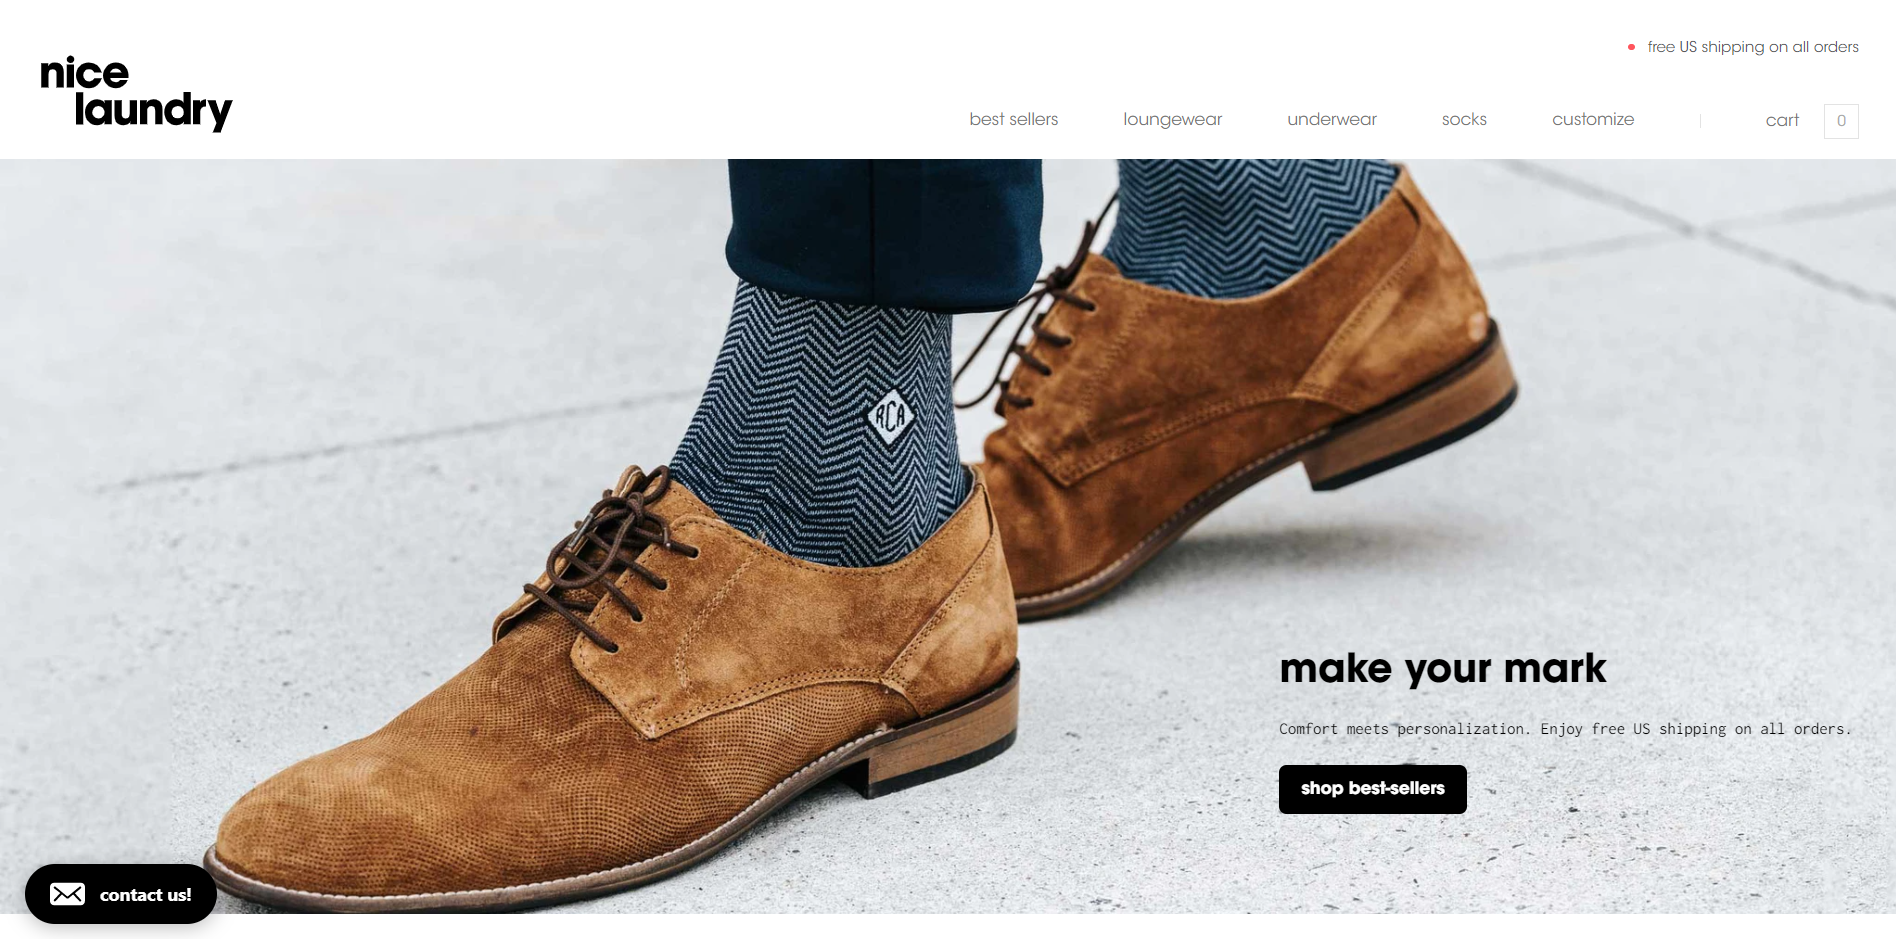 The fourth example of a good landing page